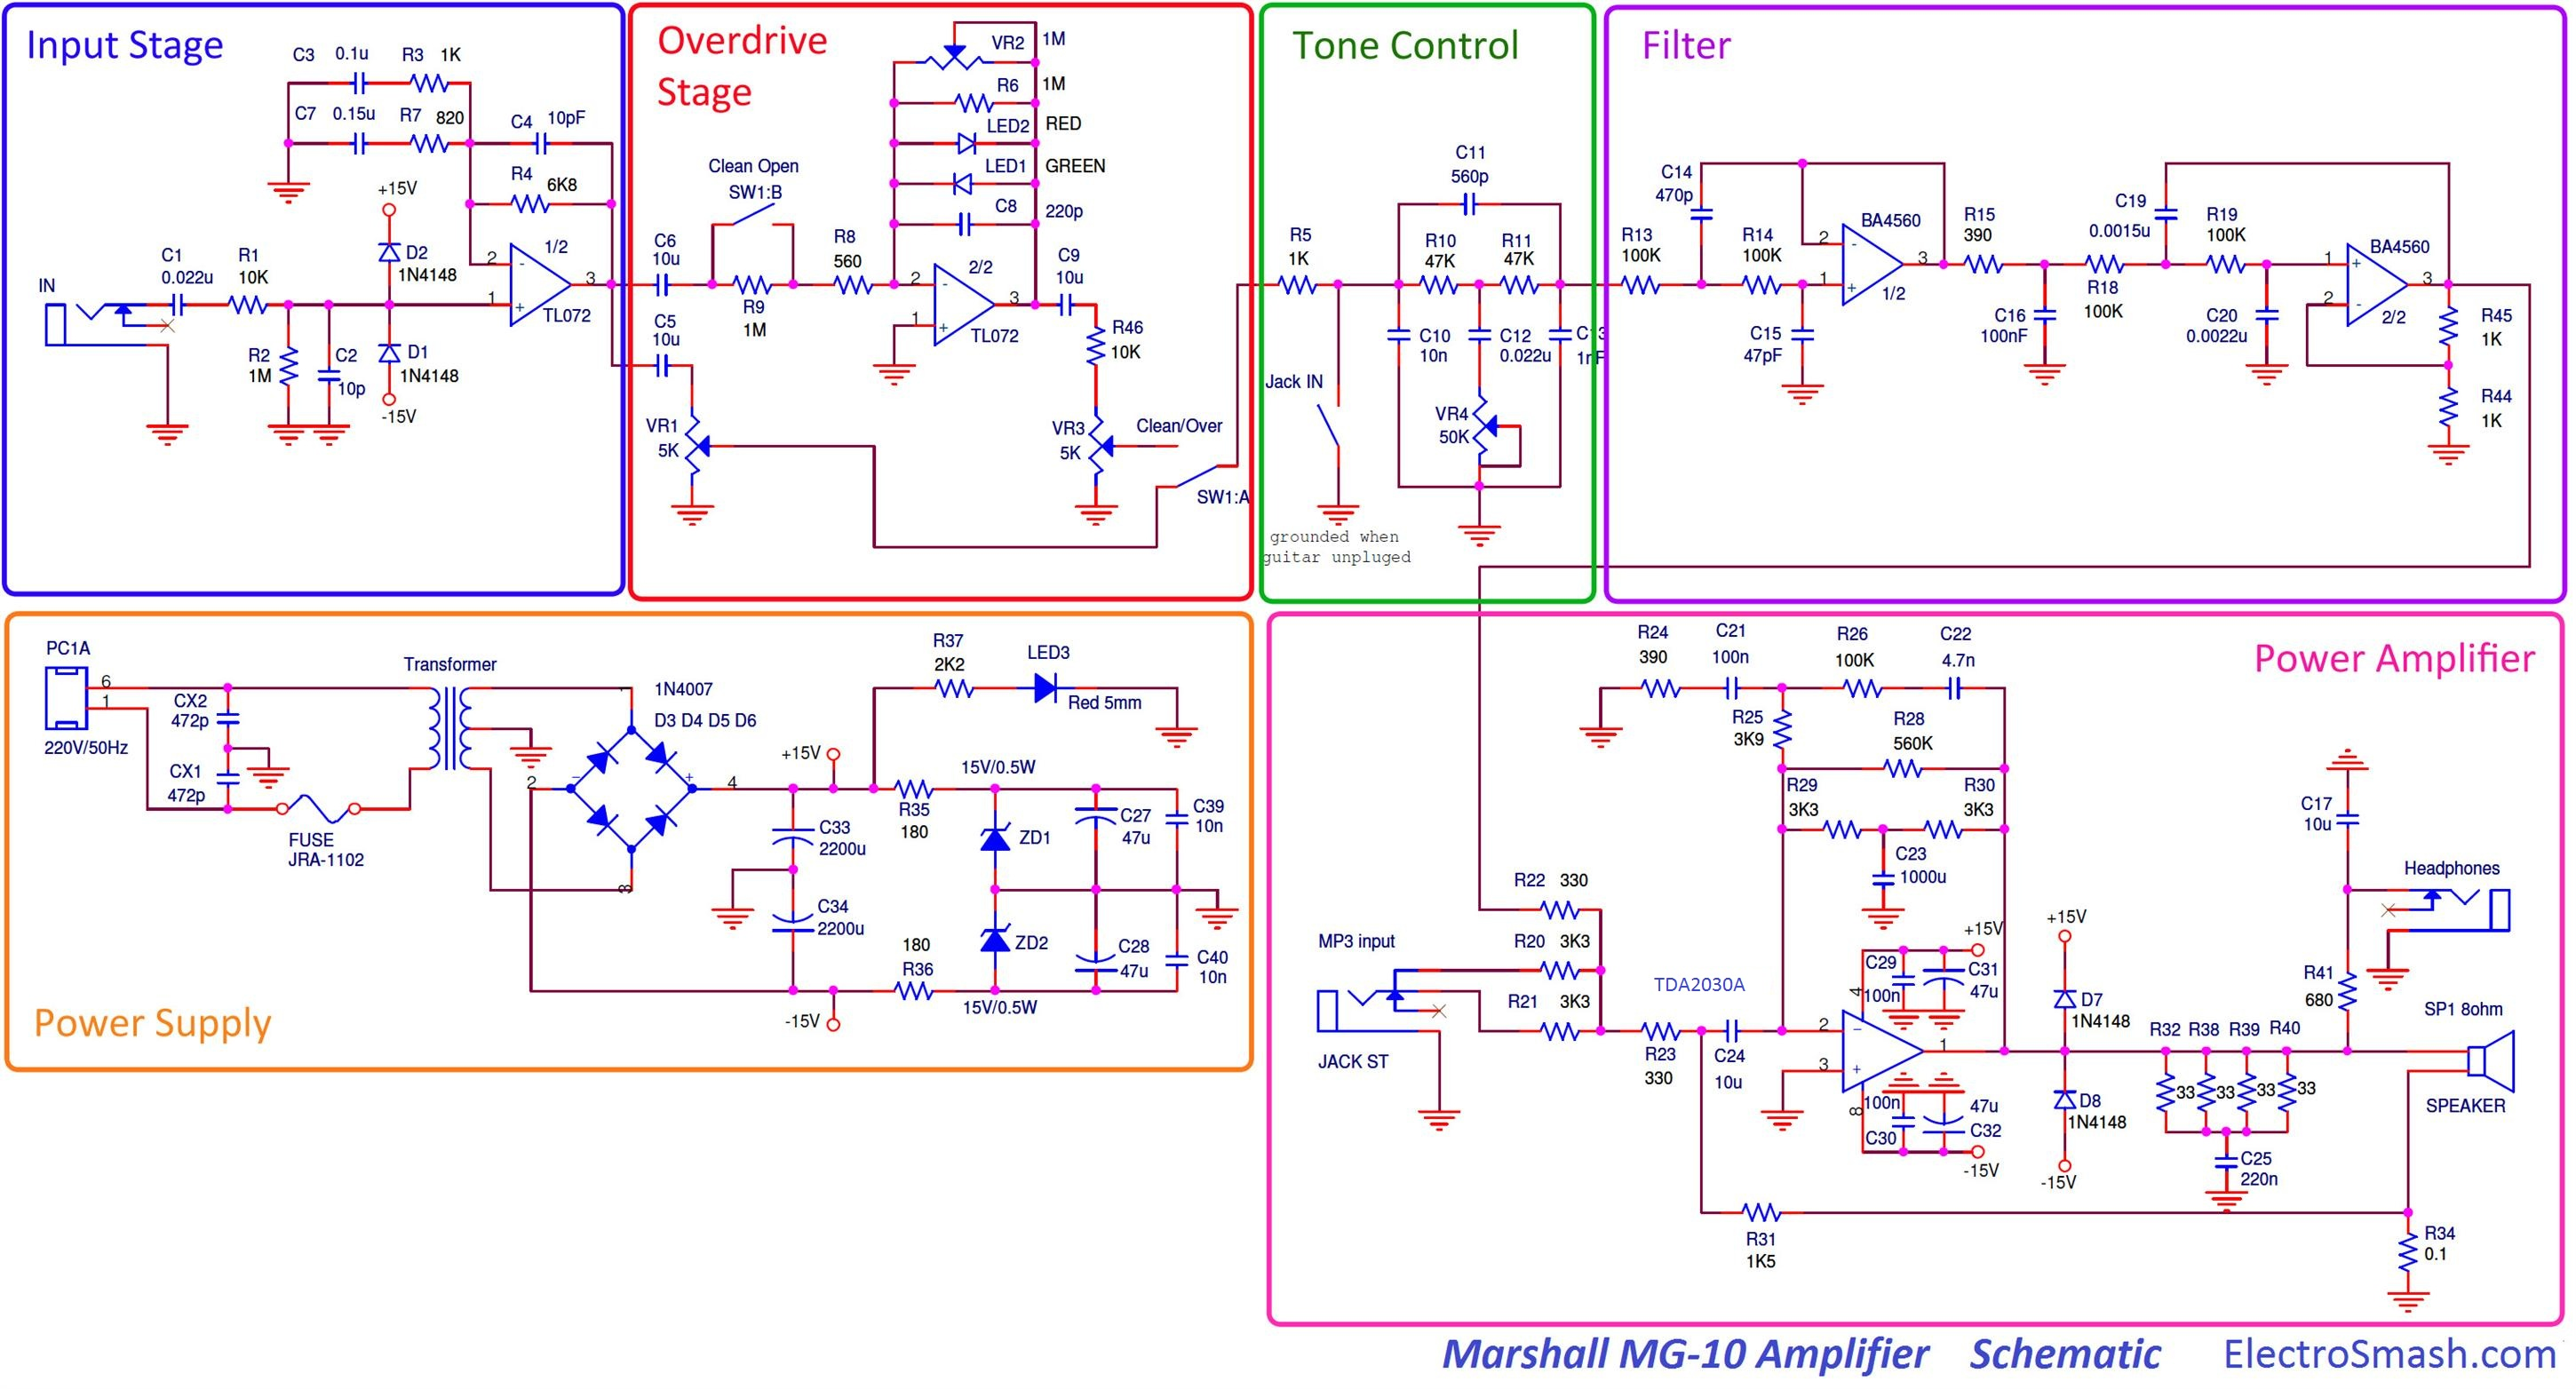 Electrosmash Marshall Mg10 Analysis Boss Subwoofer Wiring Diagram 2 Subwoofers 1 Amp Schematic Parts